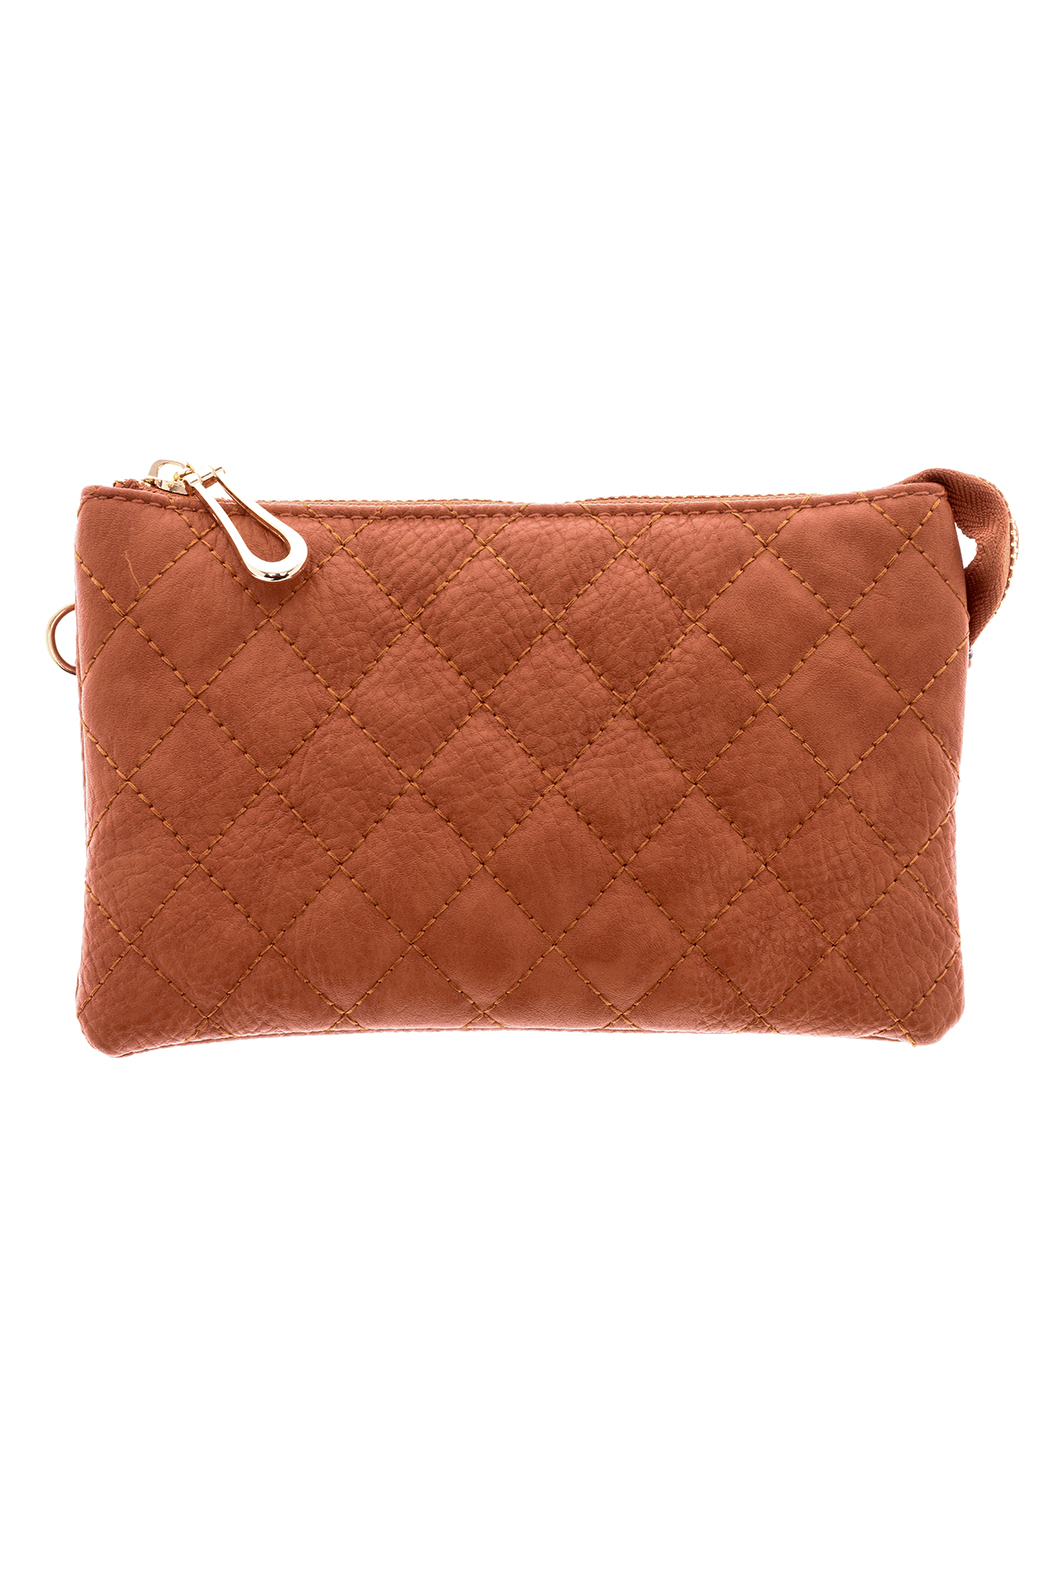 Empire Handbags  Quilted Tan Crossbody - Front Cropped Image